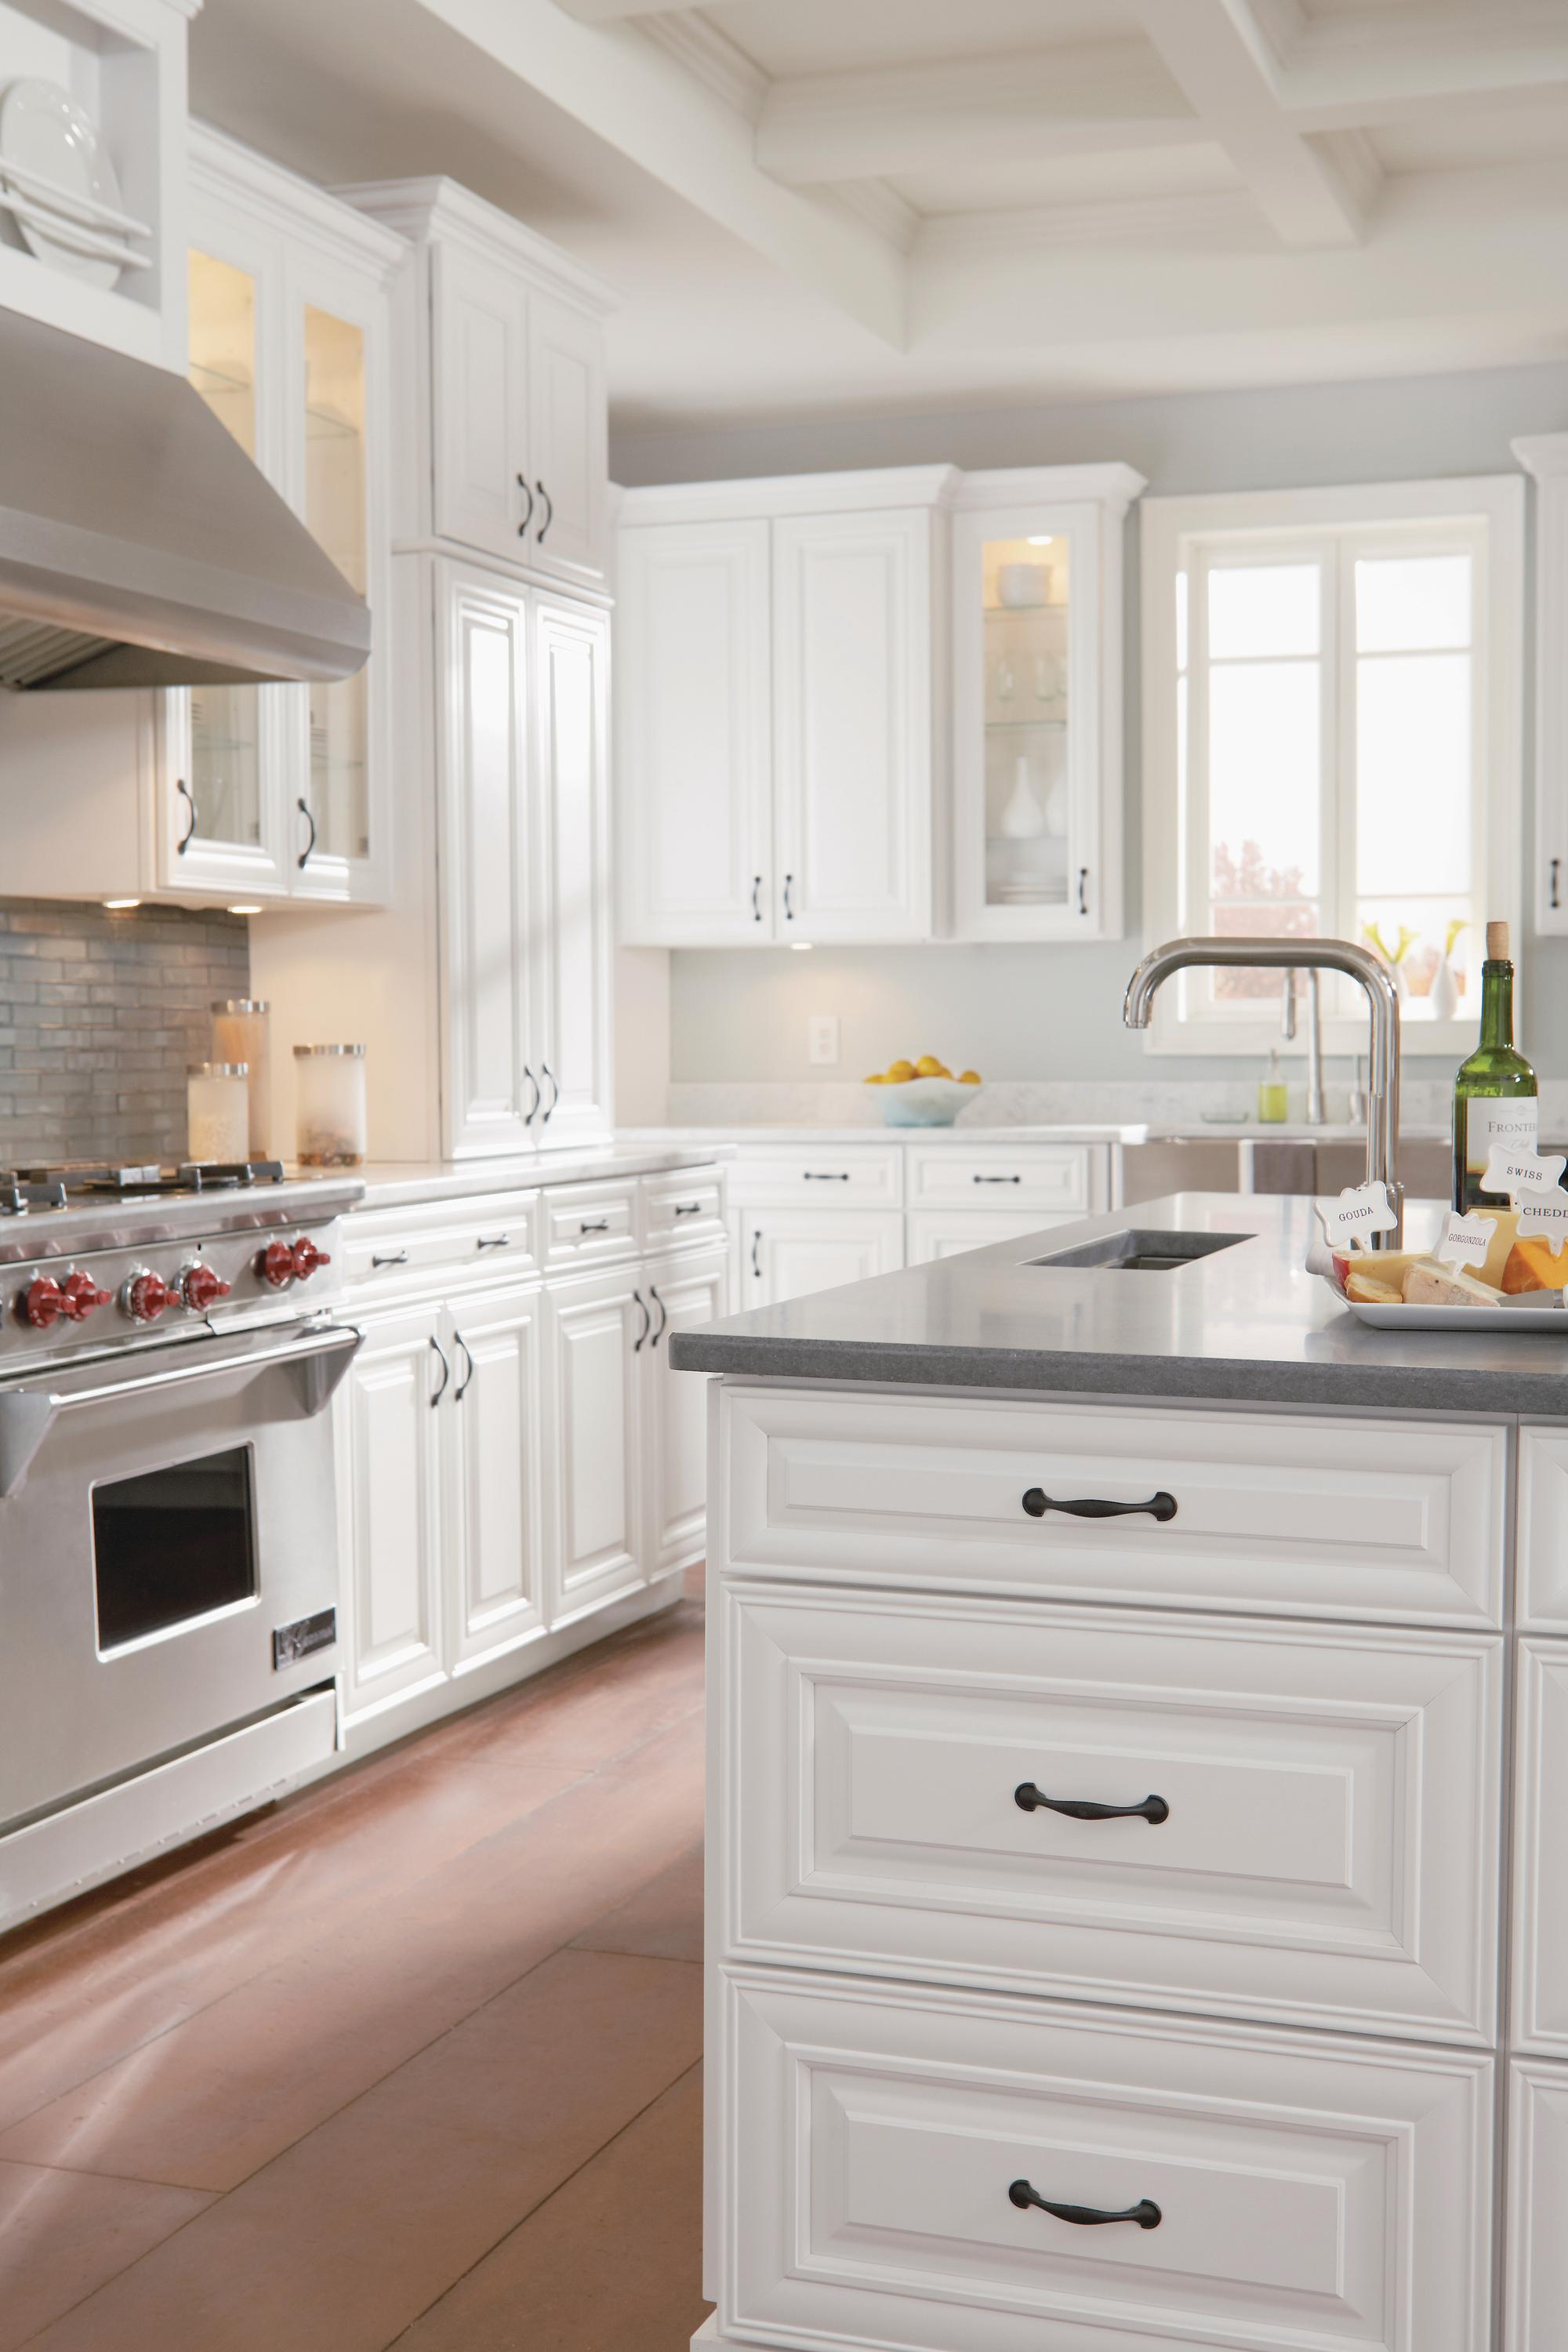 Timberlake cabinetry maple auburn glaze and painted maple for American maple kitchen cabinets